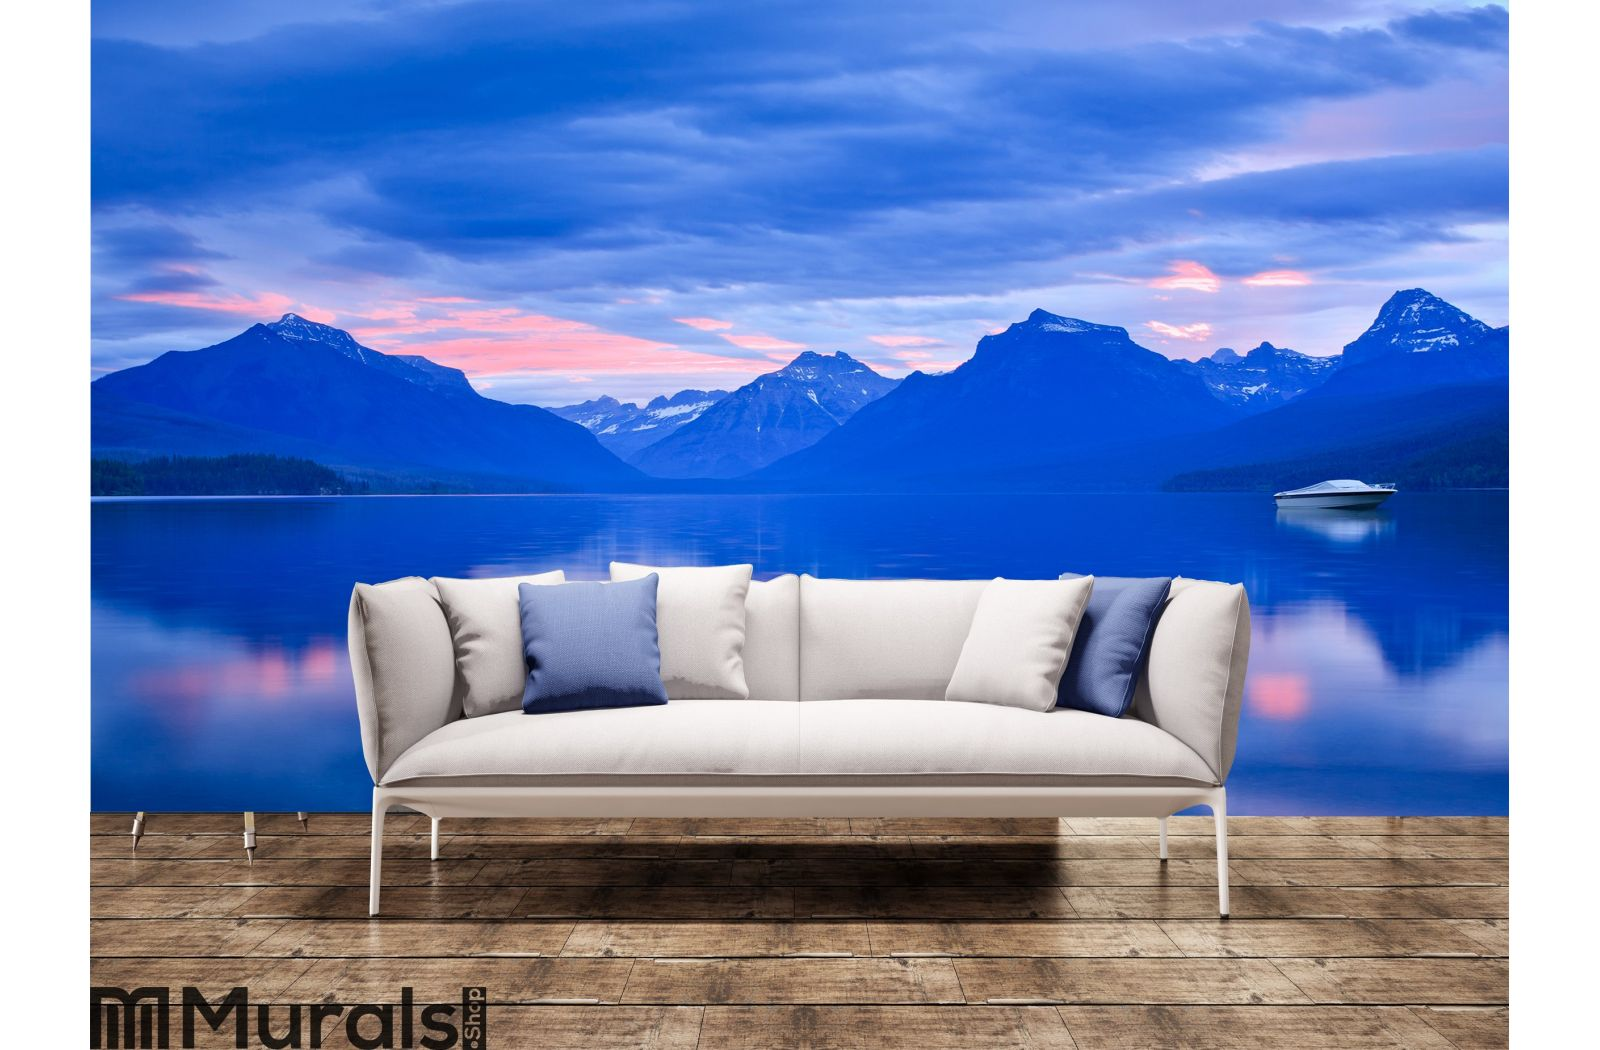 Lone Boat and Sunrise Colors on Calm Mountain Wall Mural